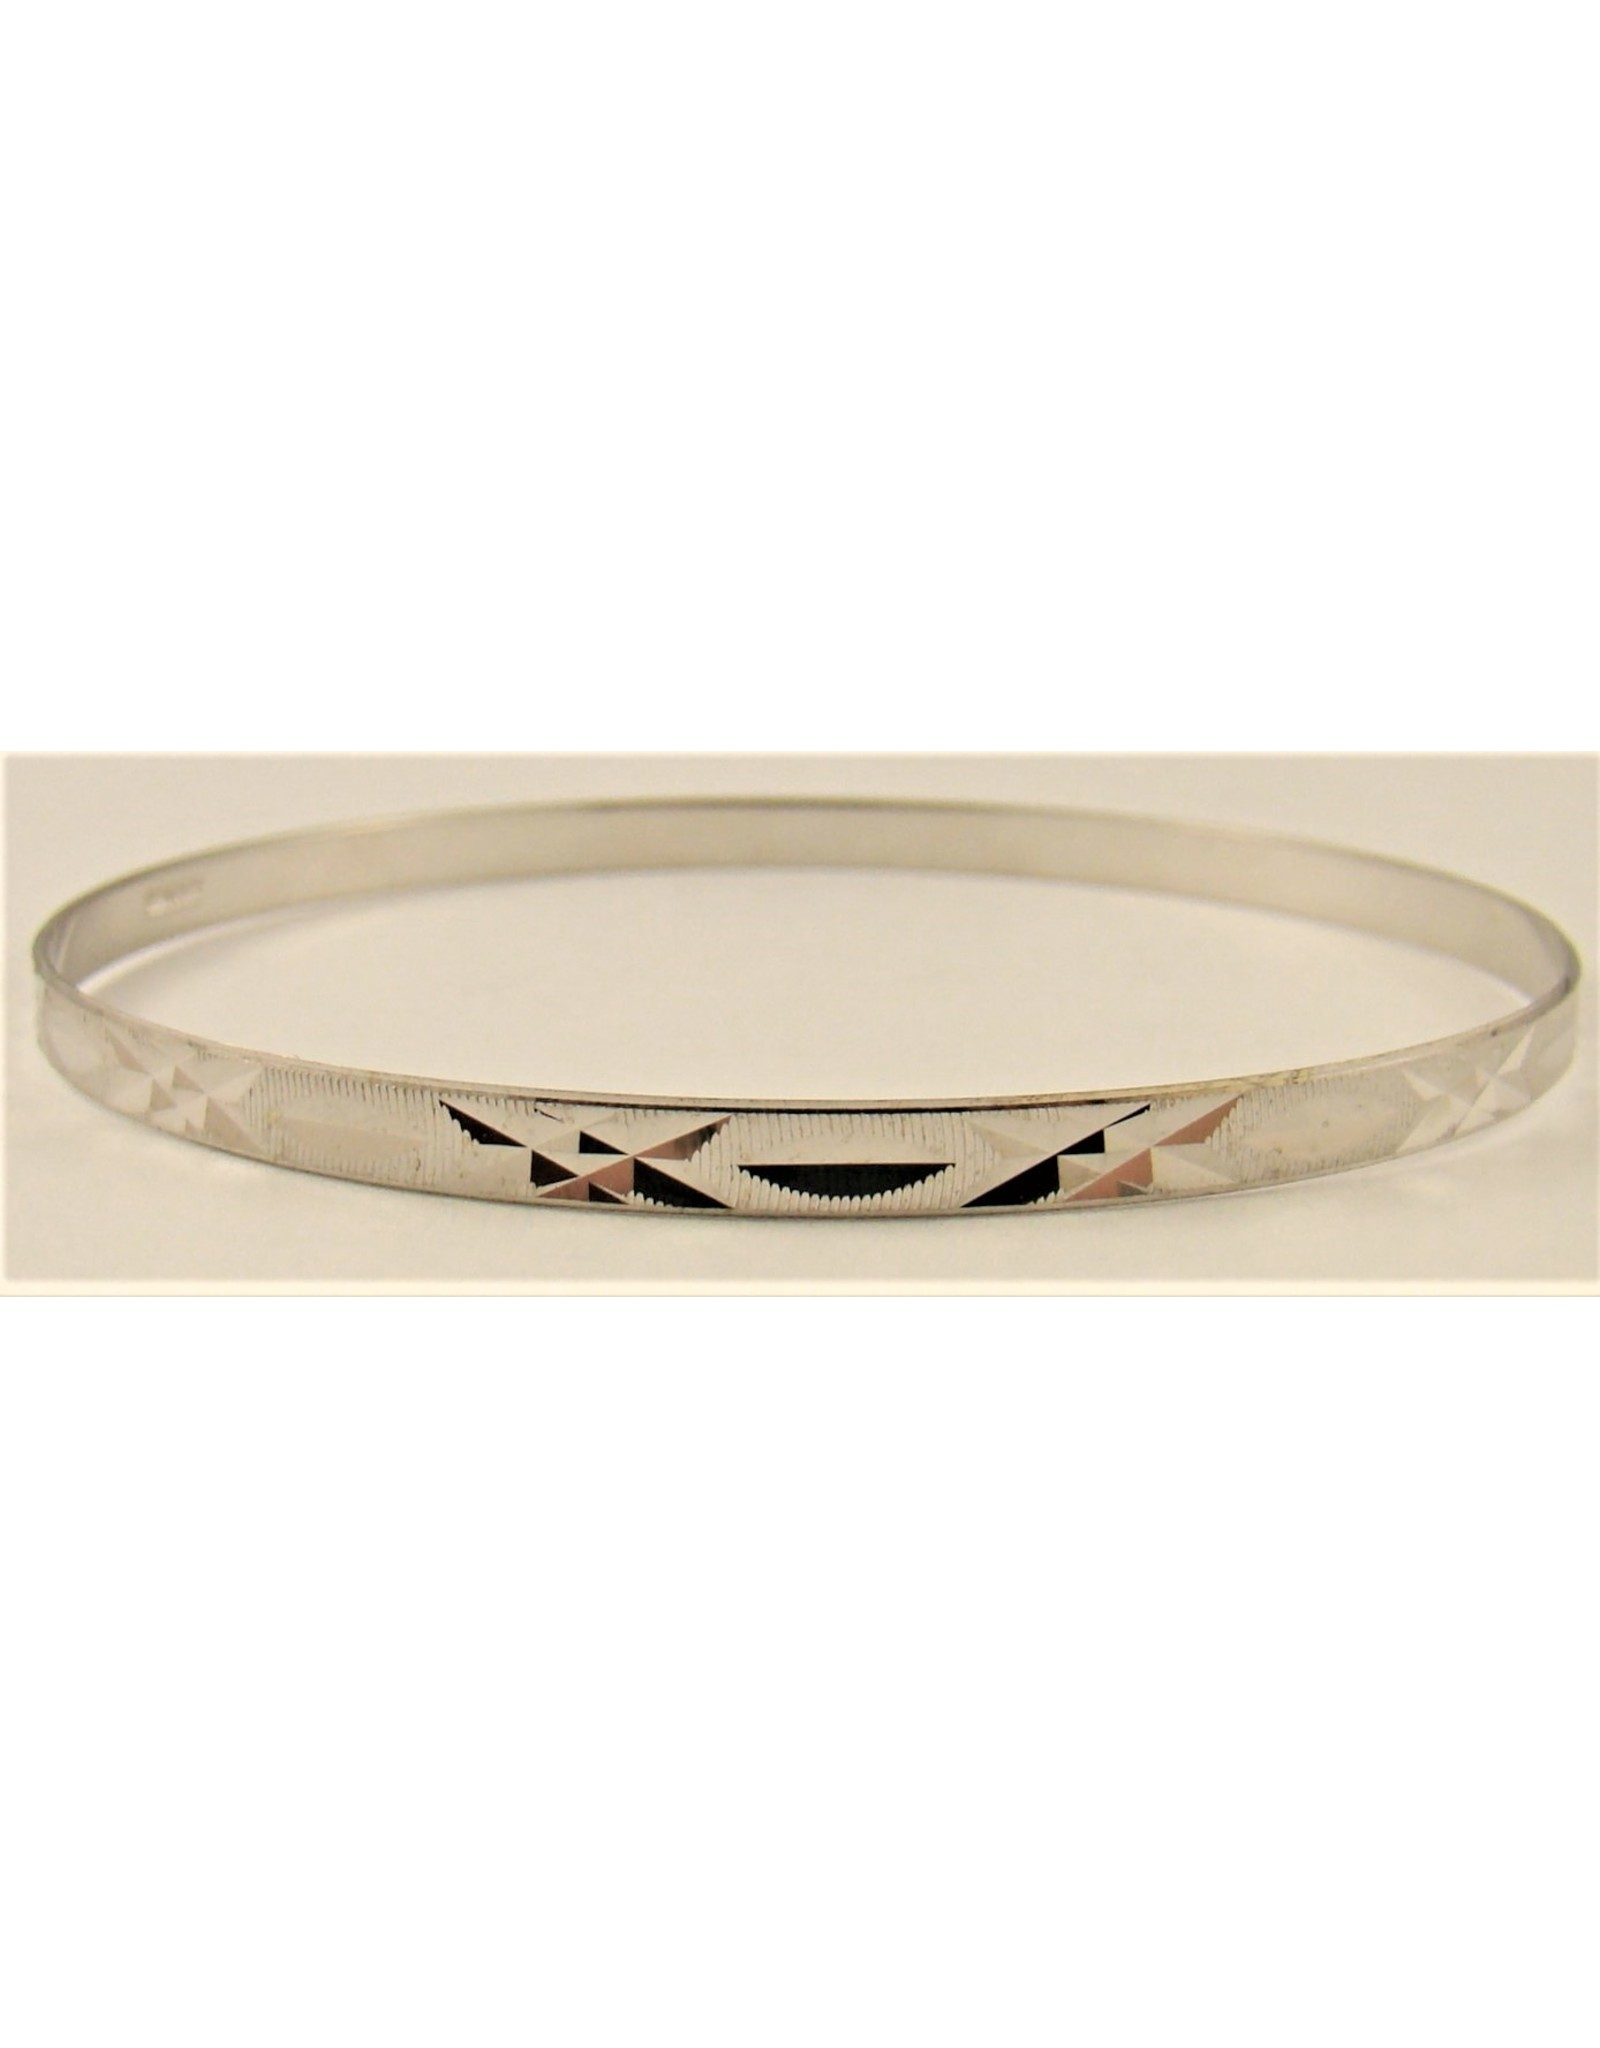 3mm Diamond Cut Flat Bangle 10KW